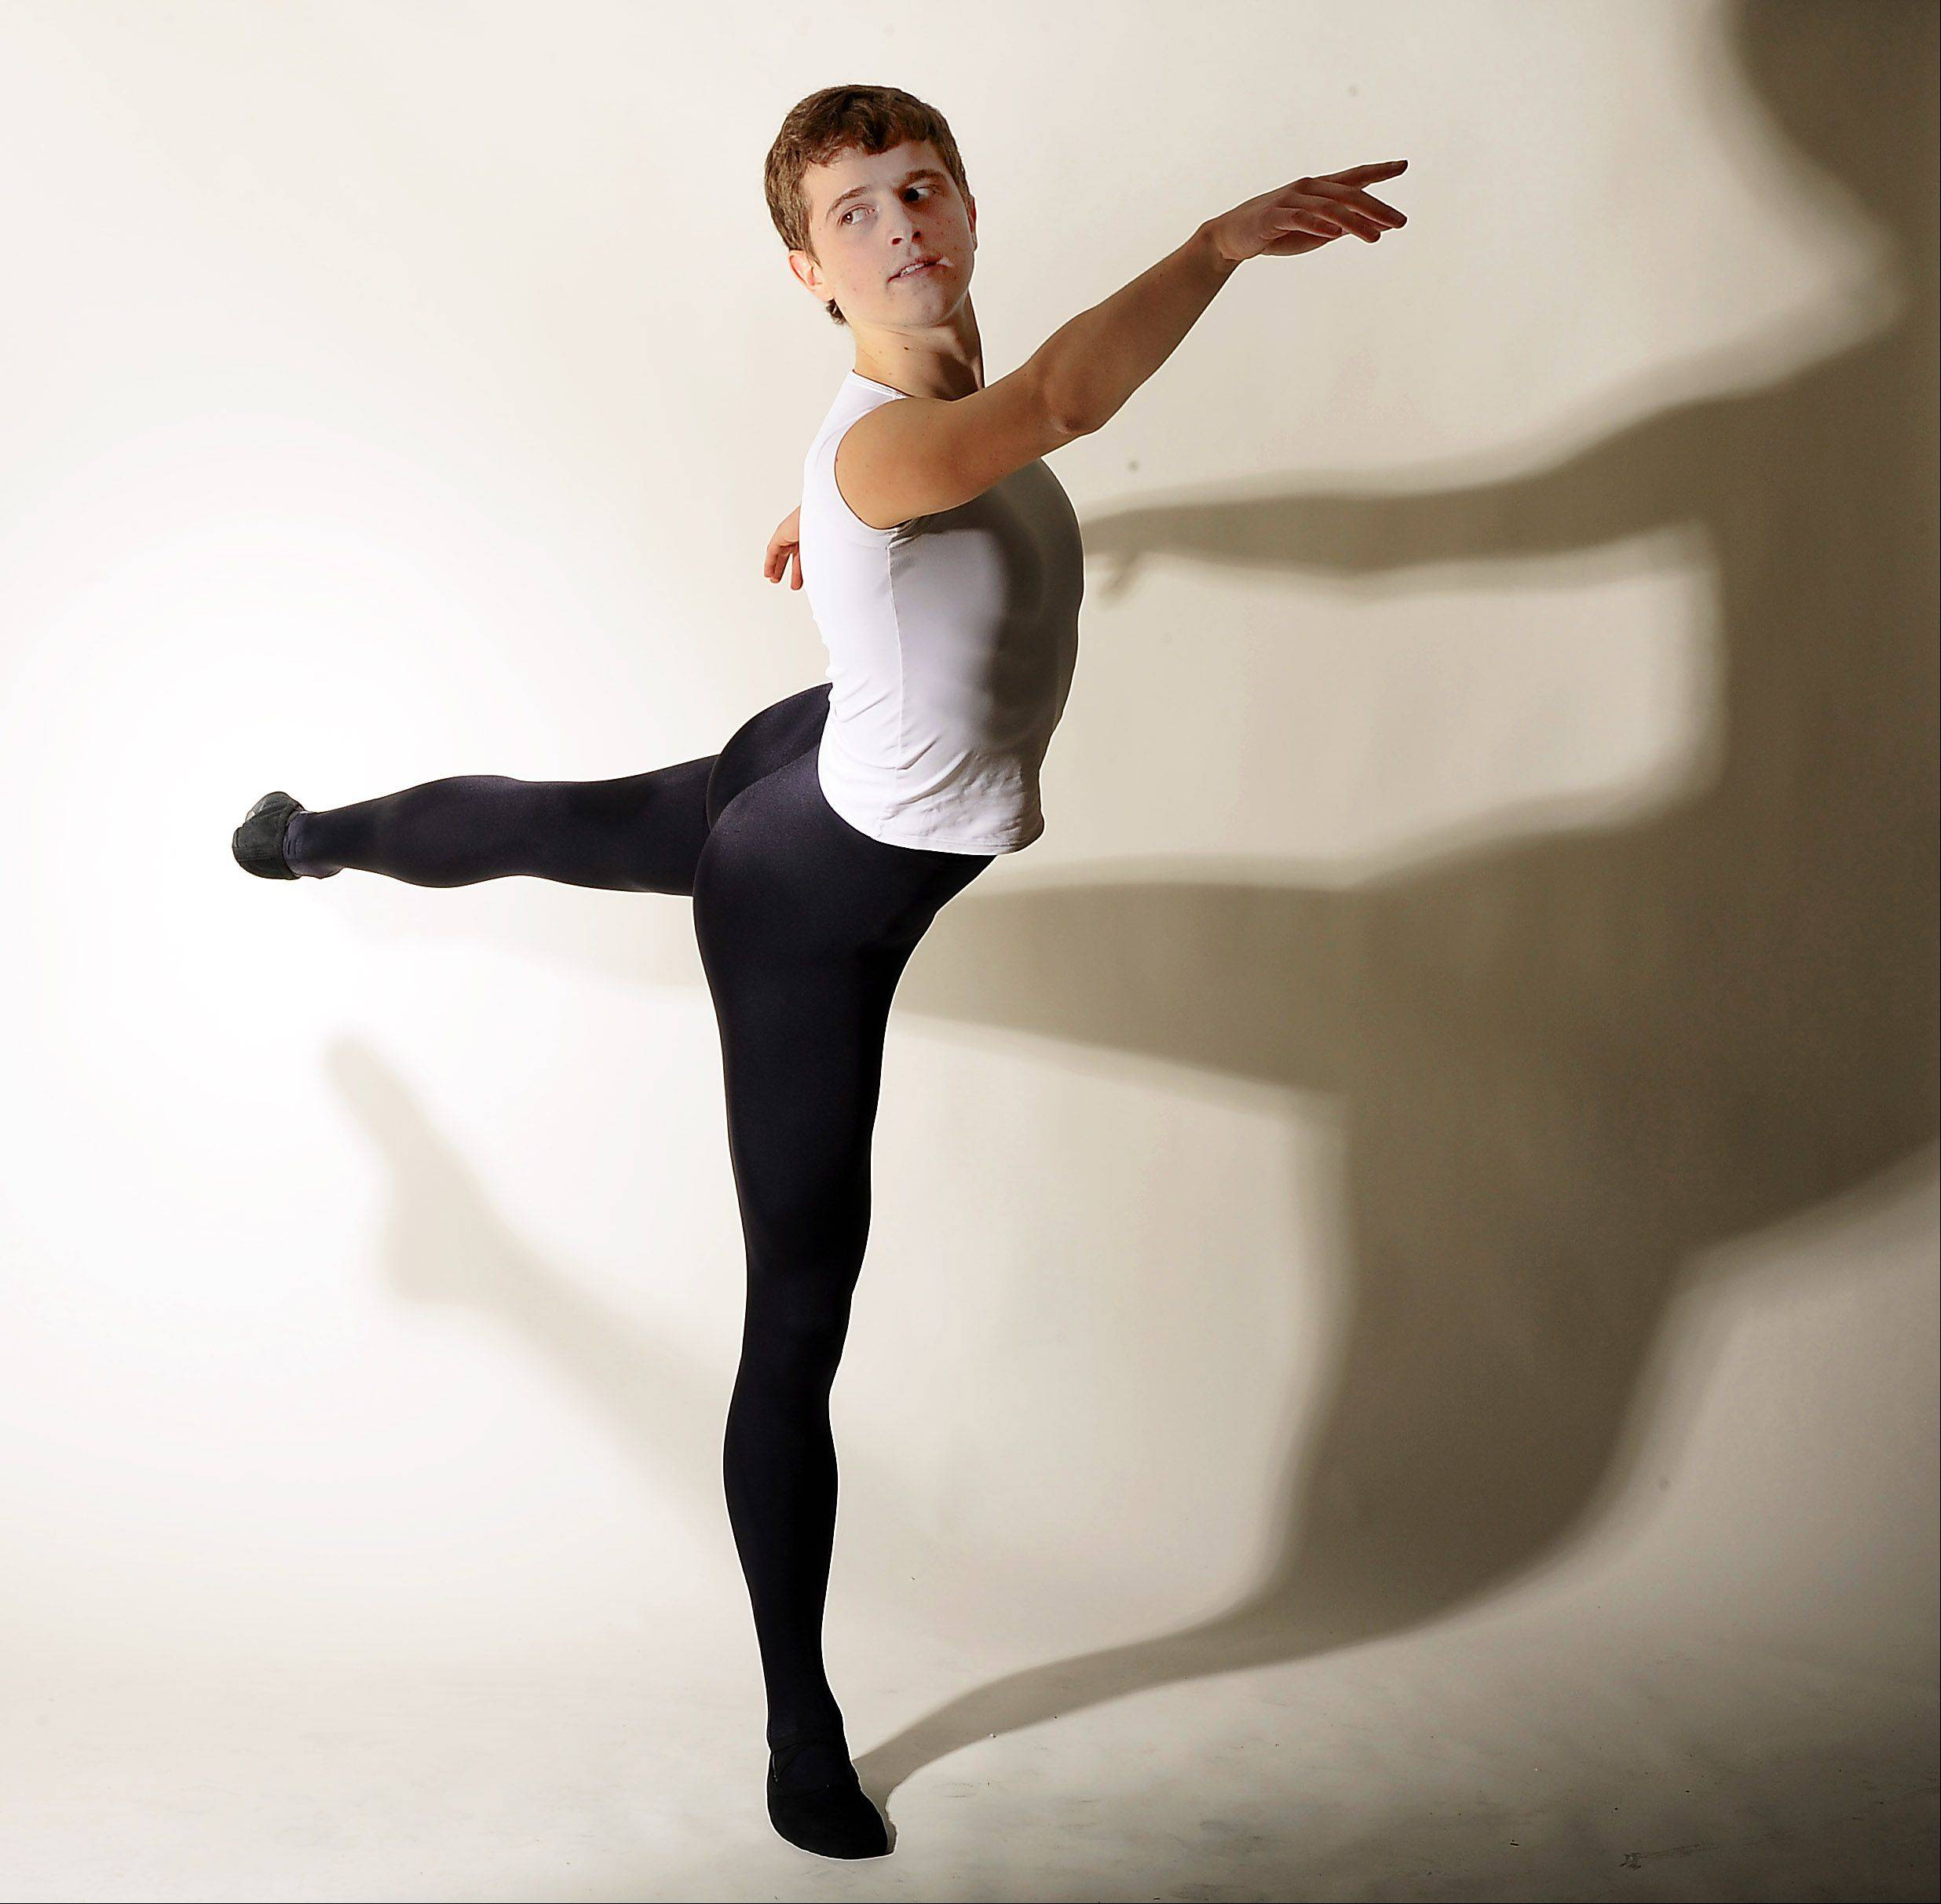 Arthur Stashak of Des Plaines is one of the best young male ballet dancers and is attending Canada's School of Ballet.